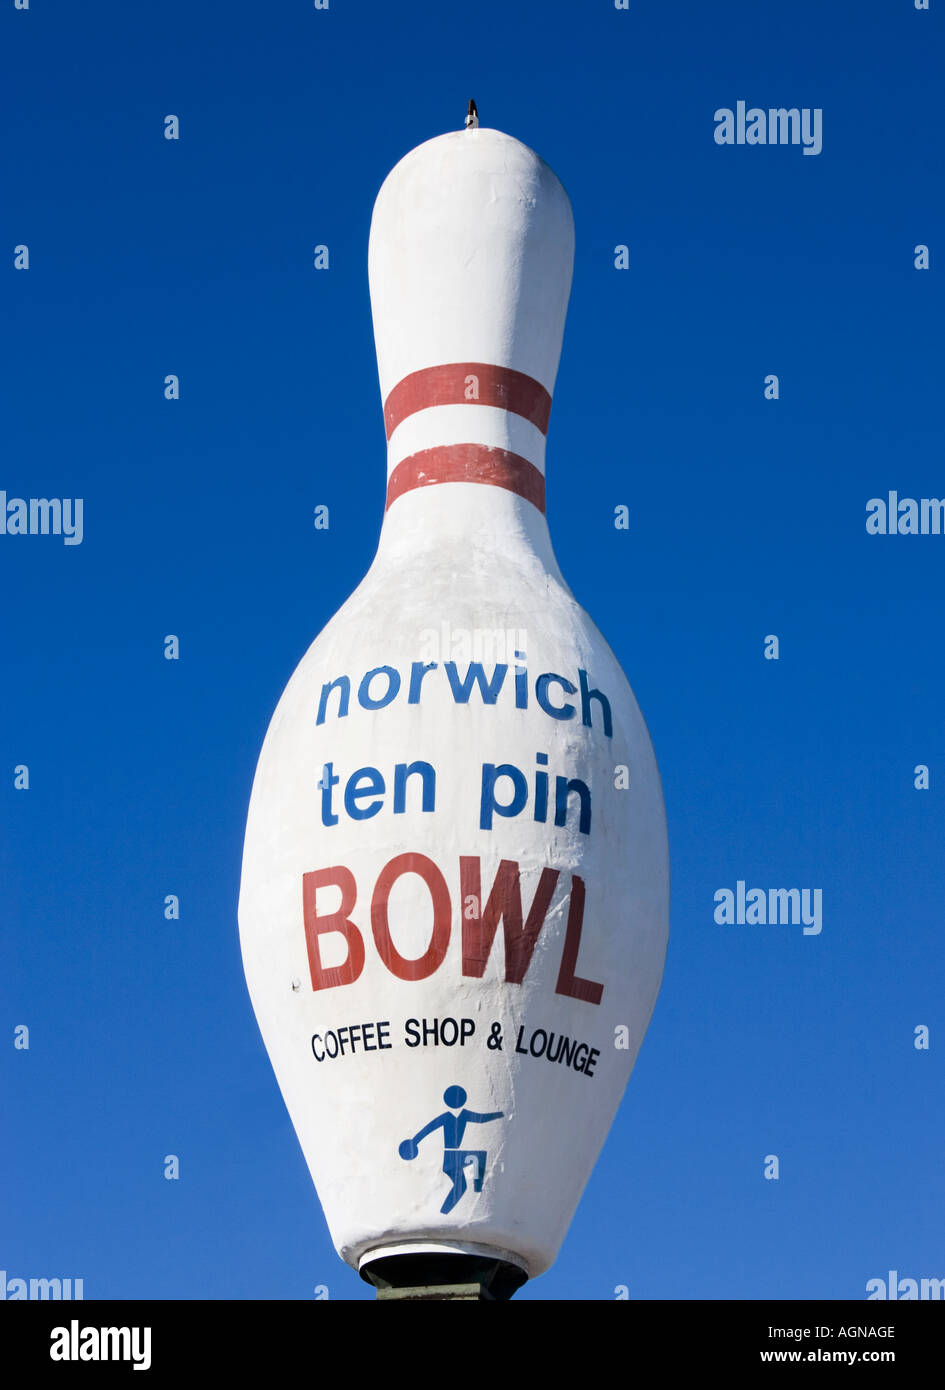 bowling alley exterior stock photos u0026 bowling alley exterior stock